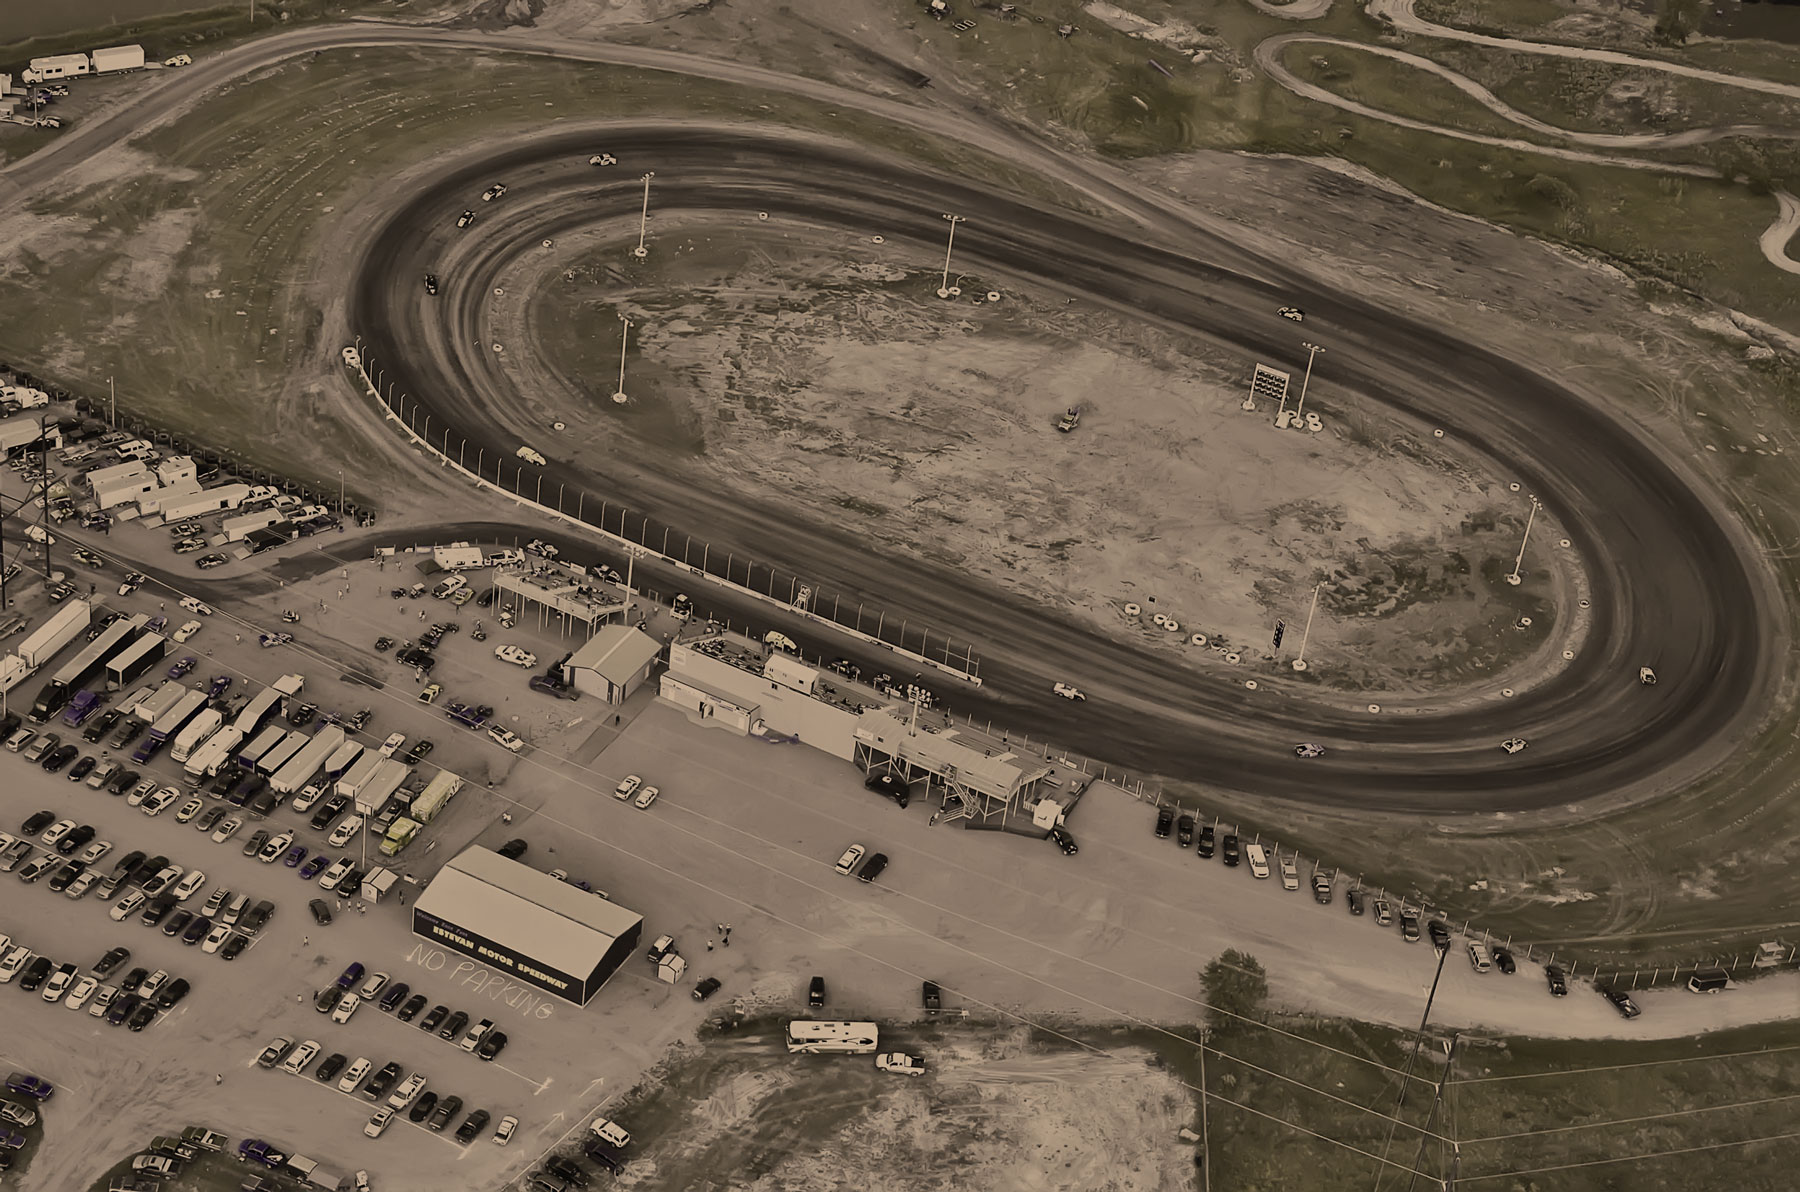 A bird's eye view of the Estevan Motor Speedway during hot lap sessions of the 2012 Dakota Classic Modified Tour